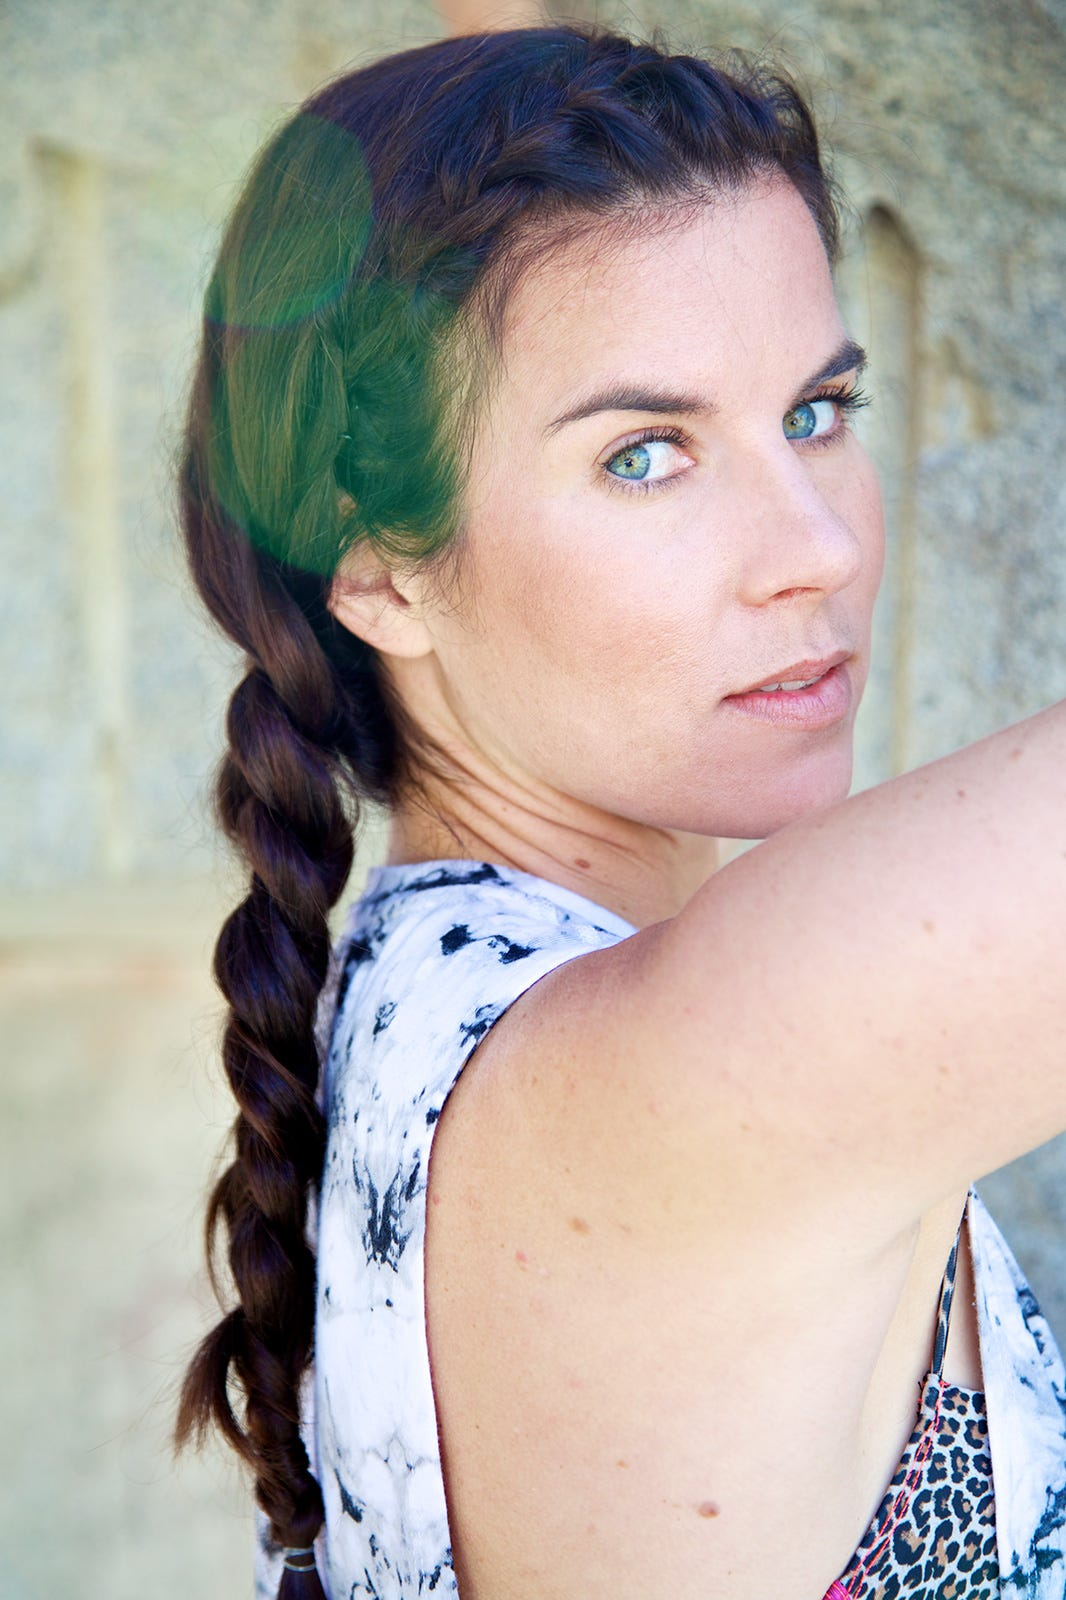 Workout Hairstyles - How To Style Hair For Outdoors